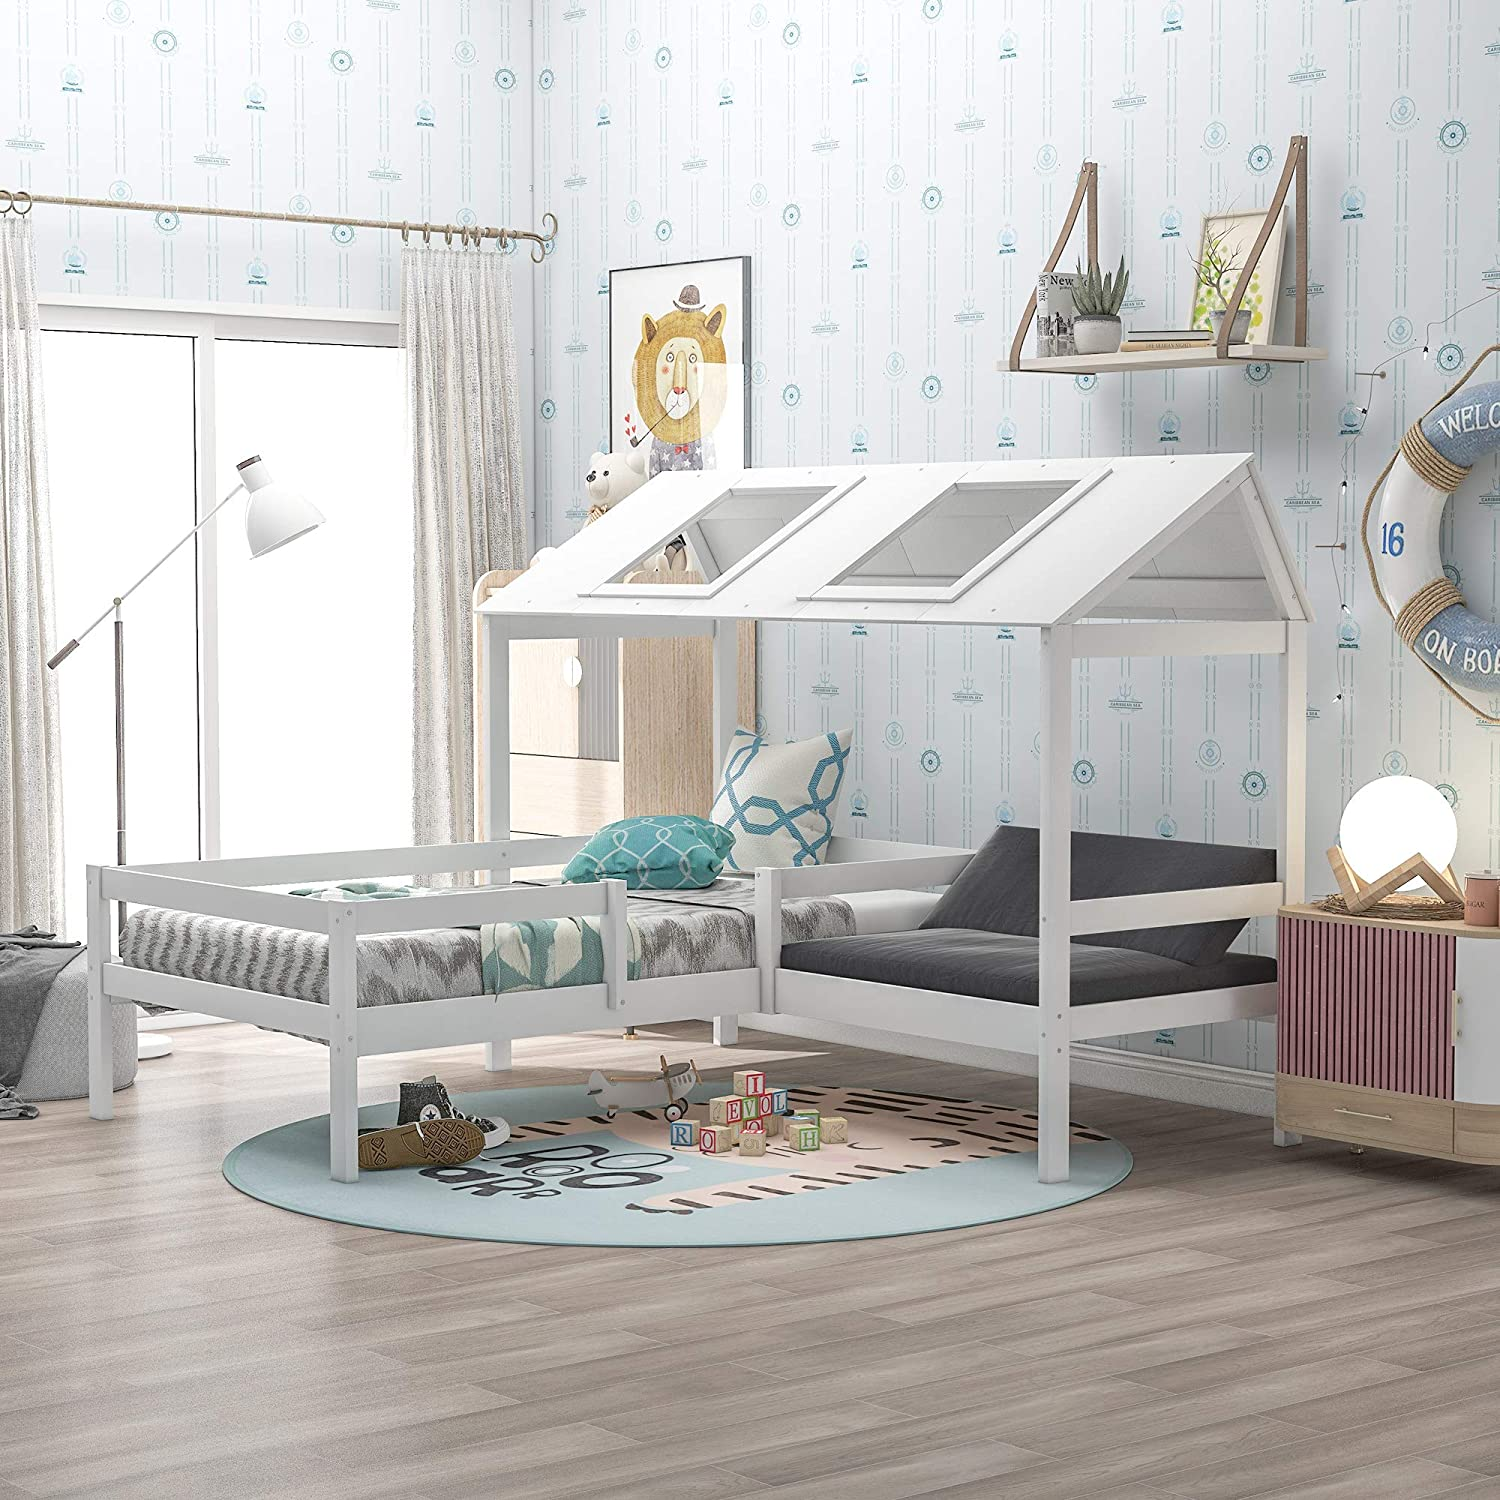 Bellemave 2021 model Kids Twin Translated Bed Wood House Seat Relax Rail and with